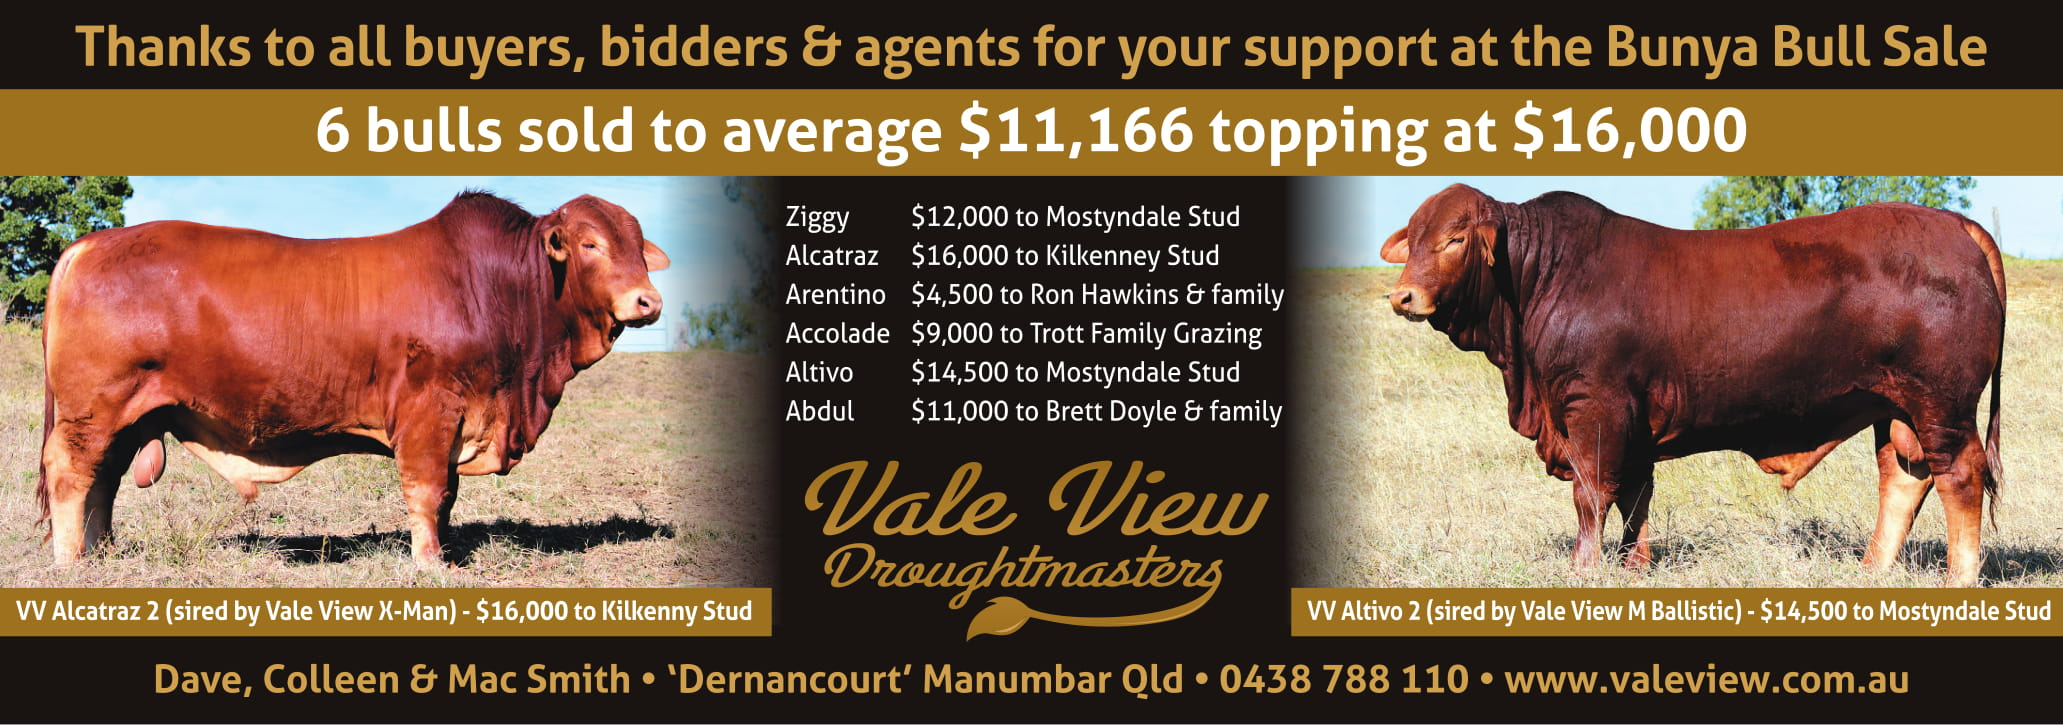 2018 Bunya QCL thank you ad